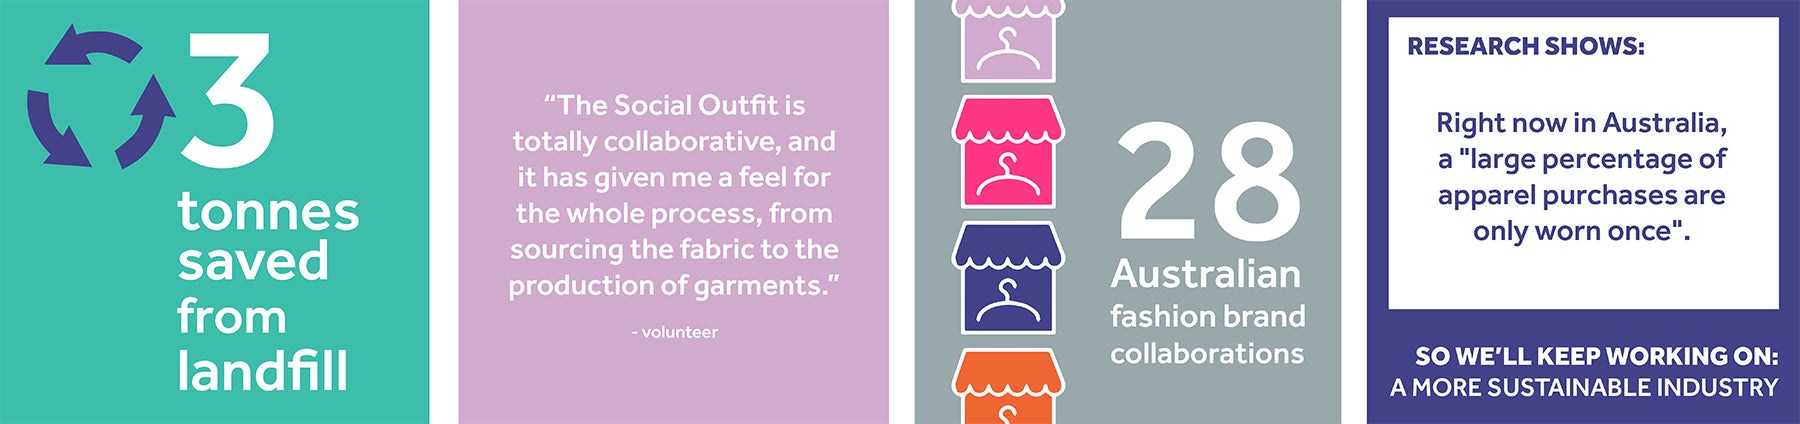 IMPACT | The Social Outfit